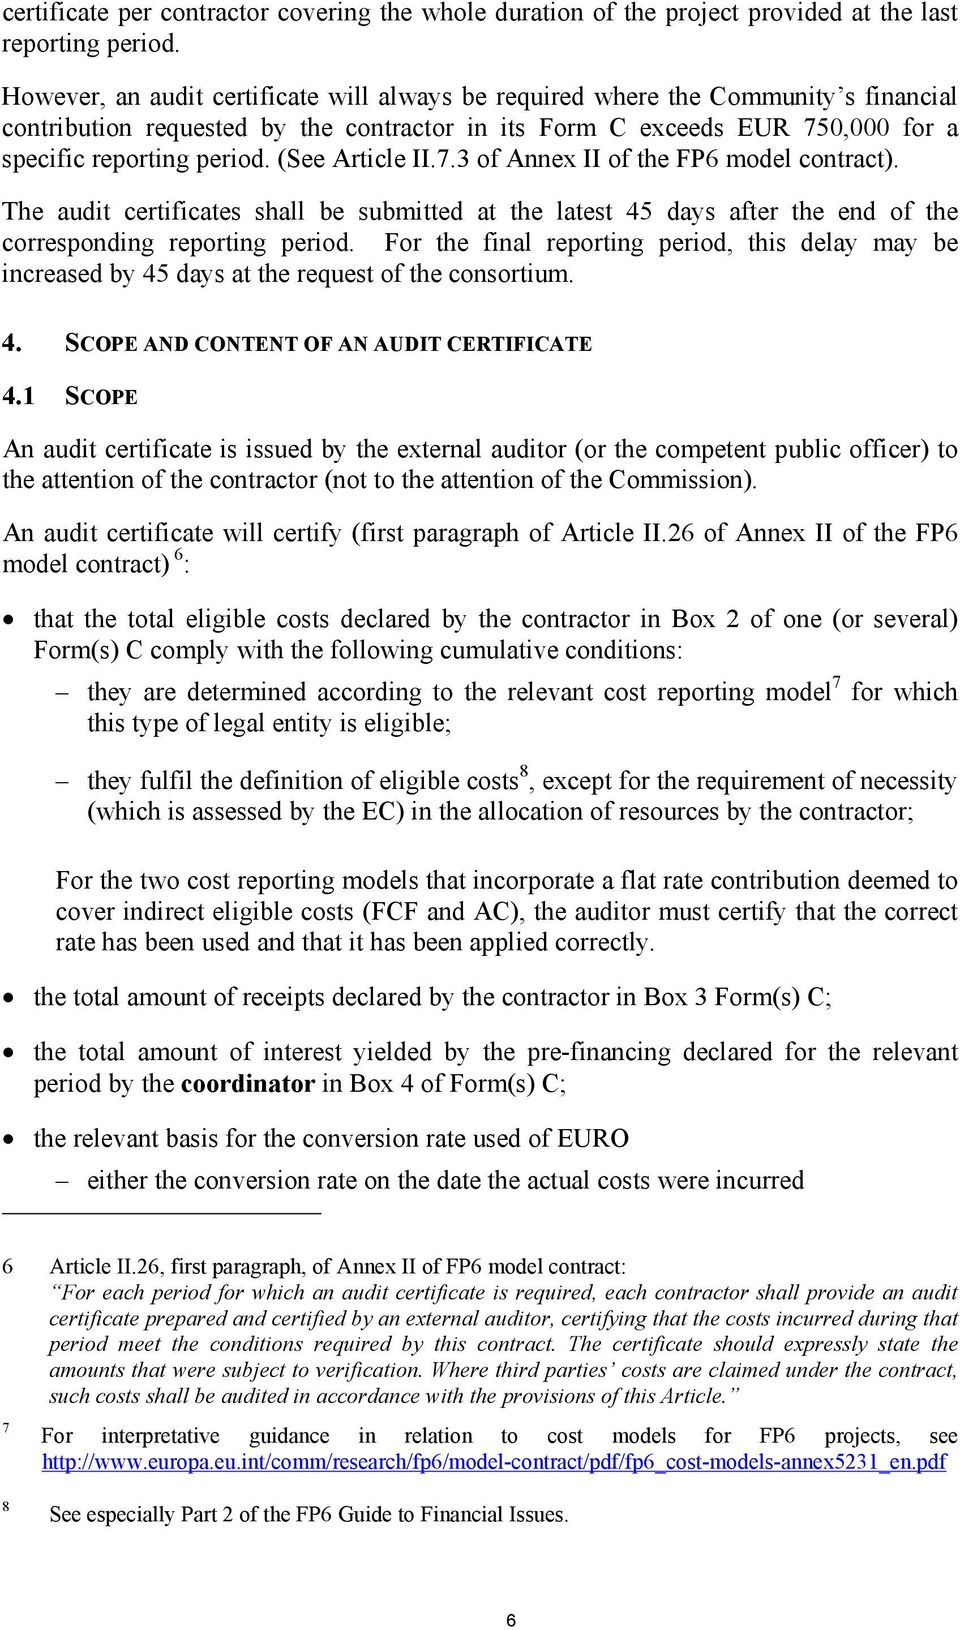 (See Article II.7.3 of Annex II of the FP6 model contract). The audit certificates shall be submitted at the latest 45 days after the end of the corresponding reporting period.